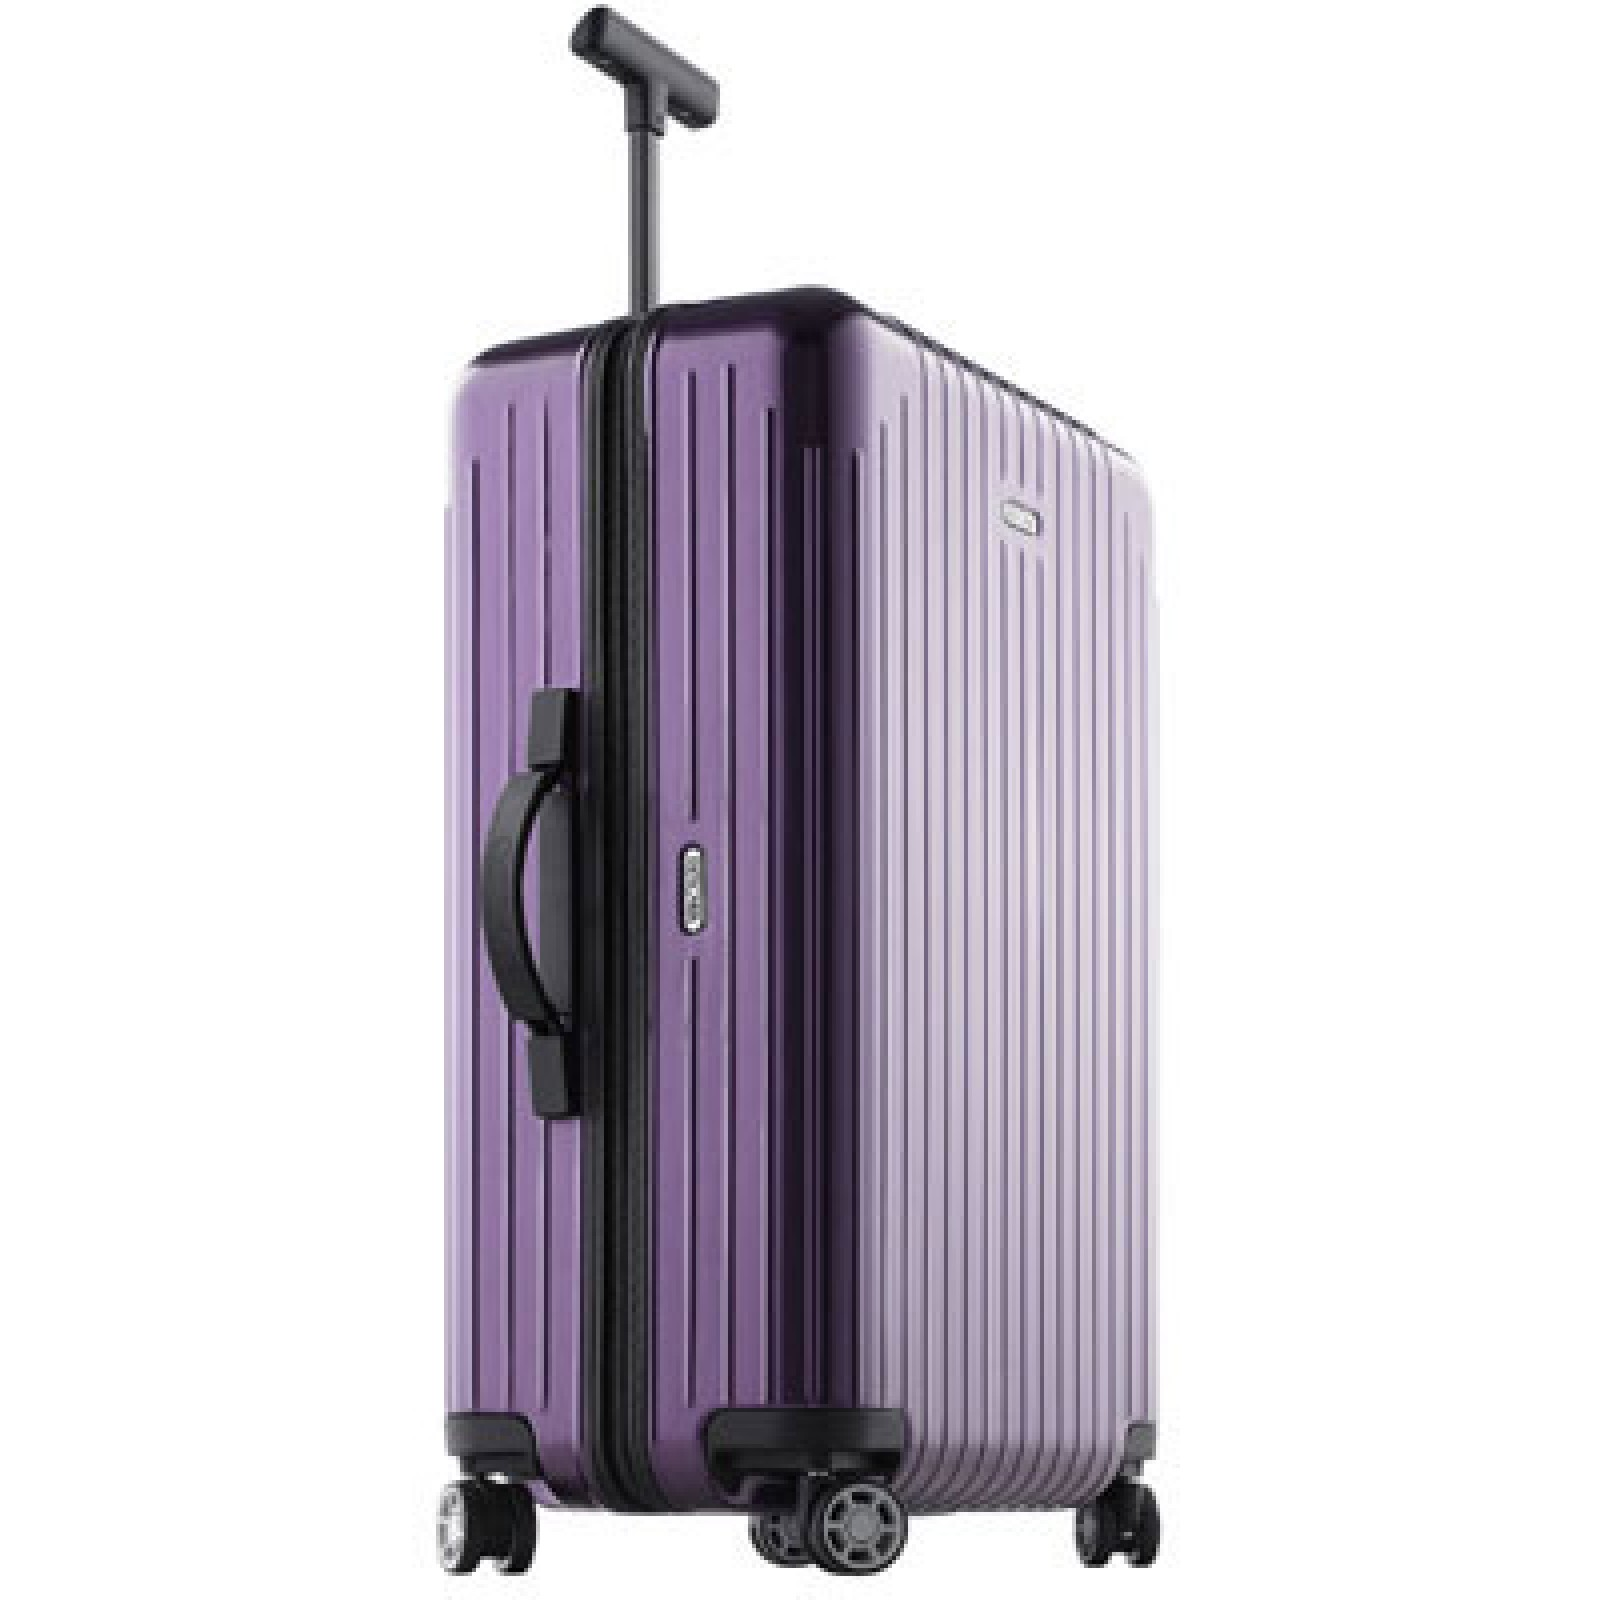 rimowa air related keywords rimowa air long tail keywords keywordsking. Black Bedroom Furniture Sets. Home Design Ideas